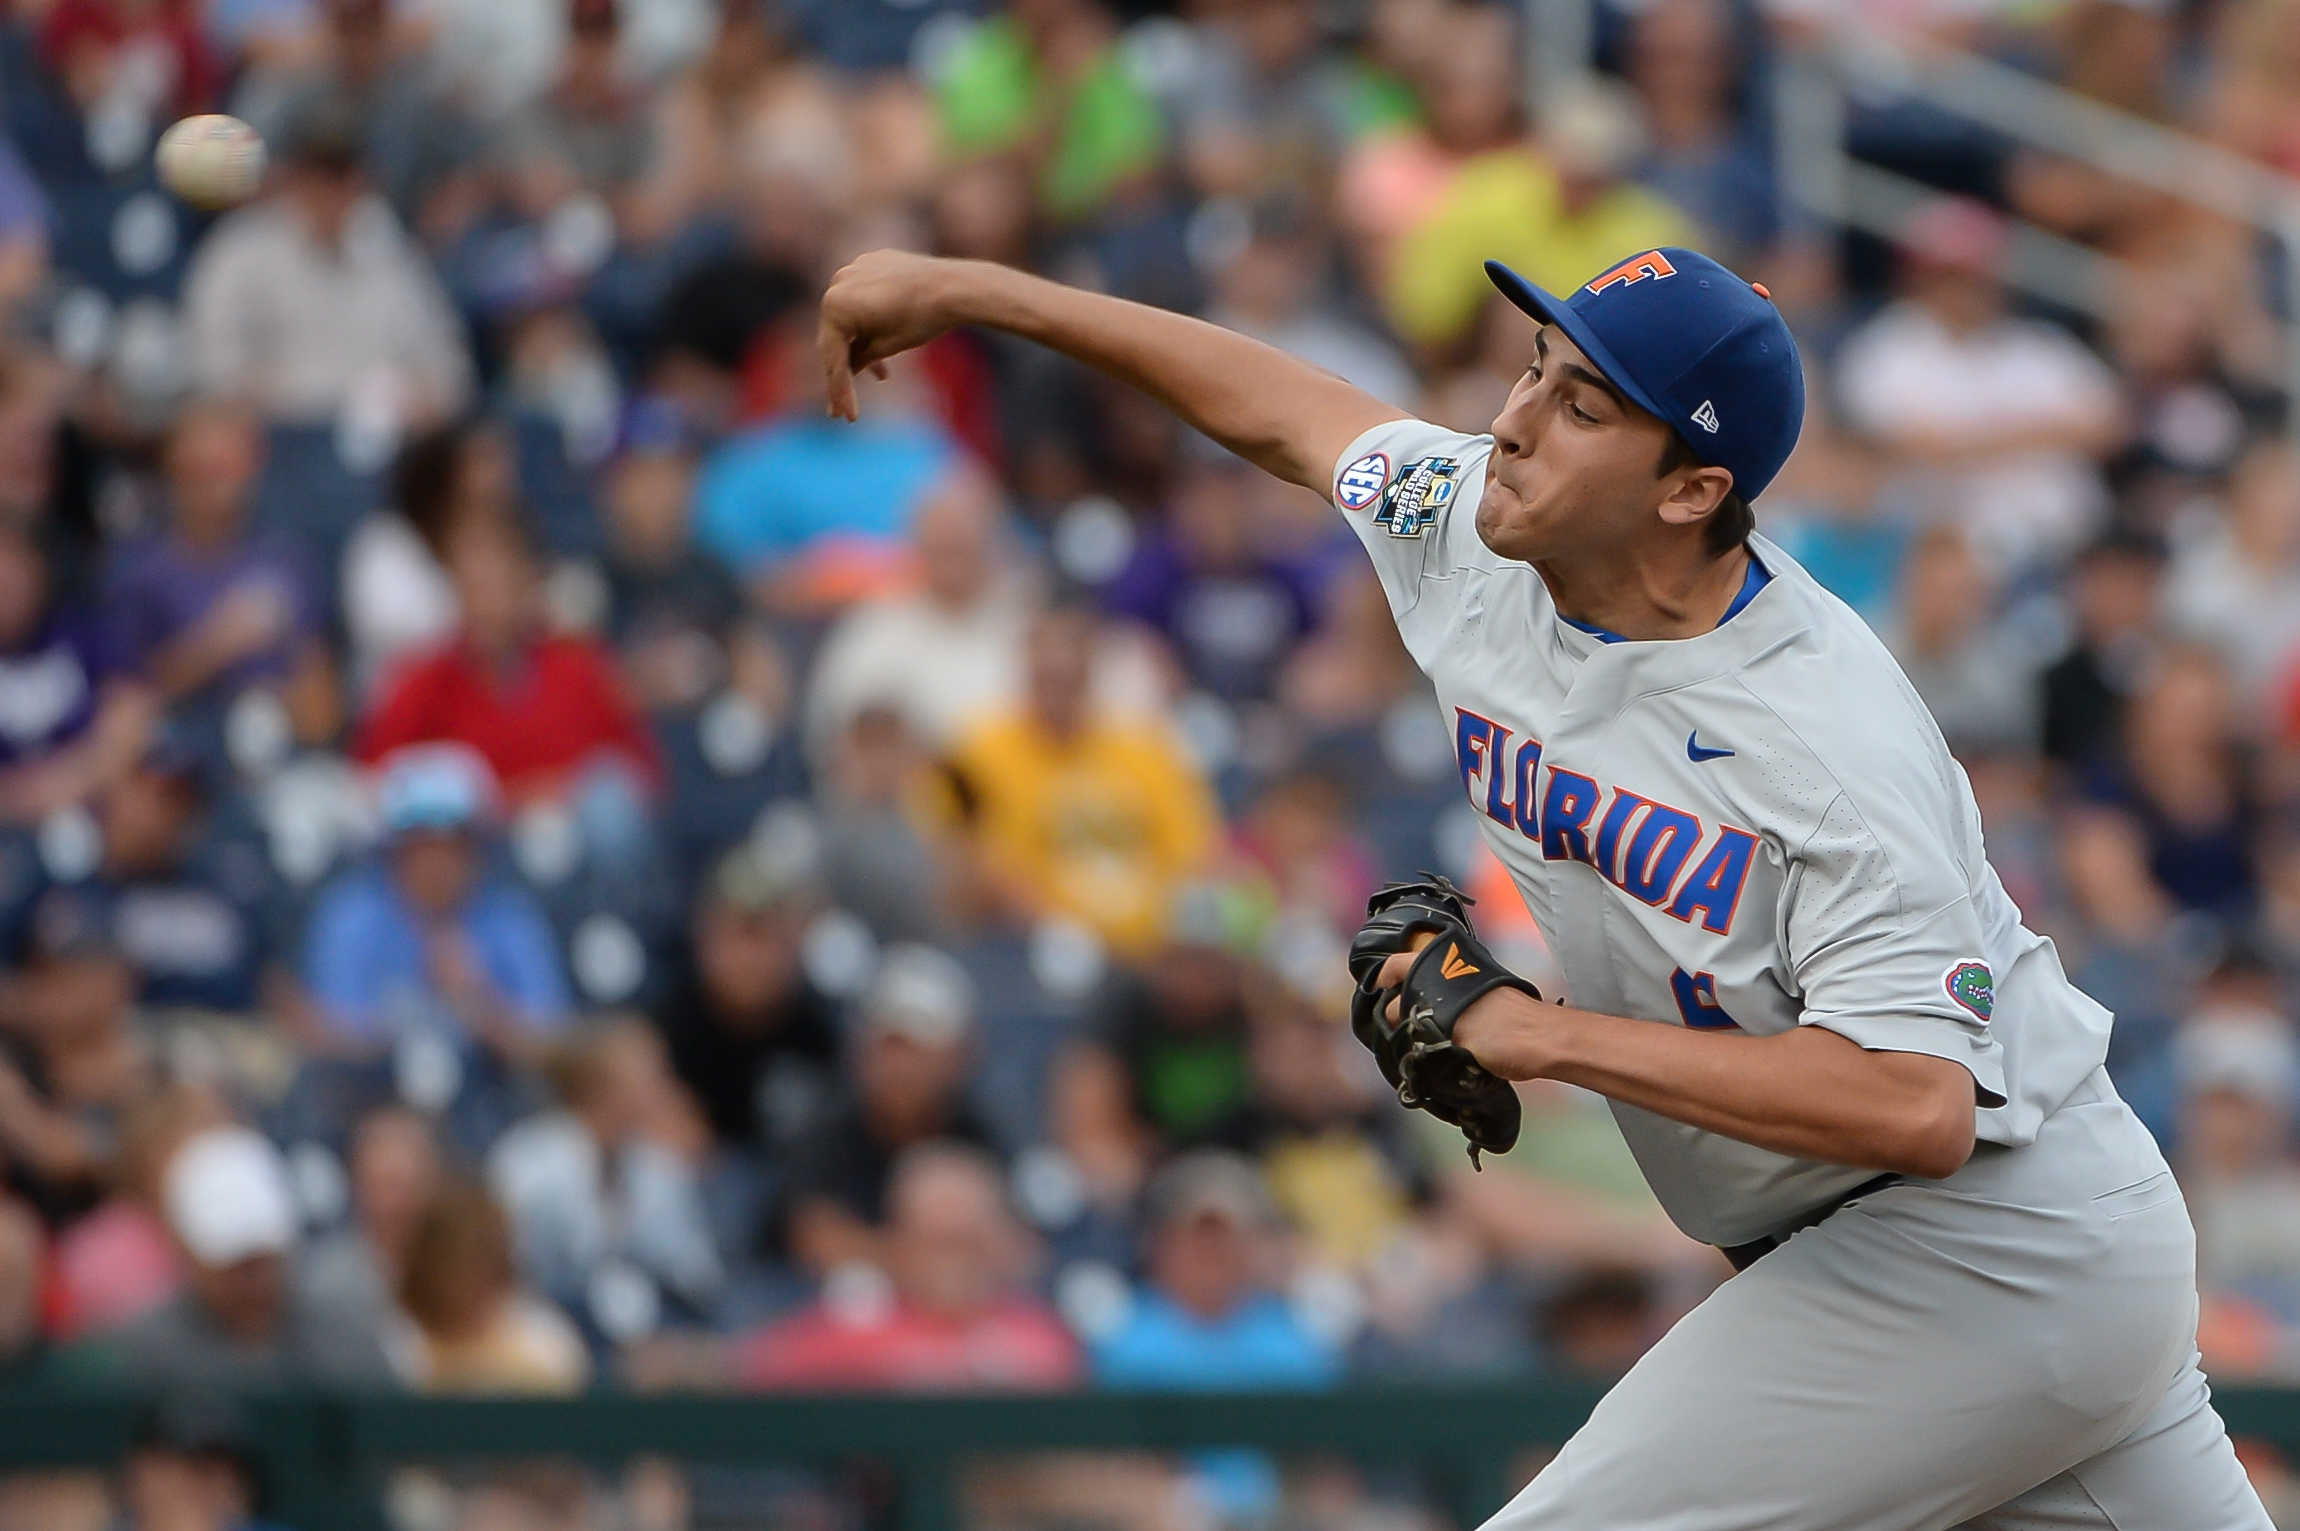 Florida baseball vs. TCU baseball preview